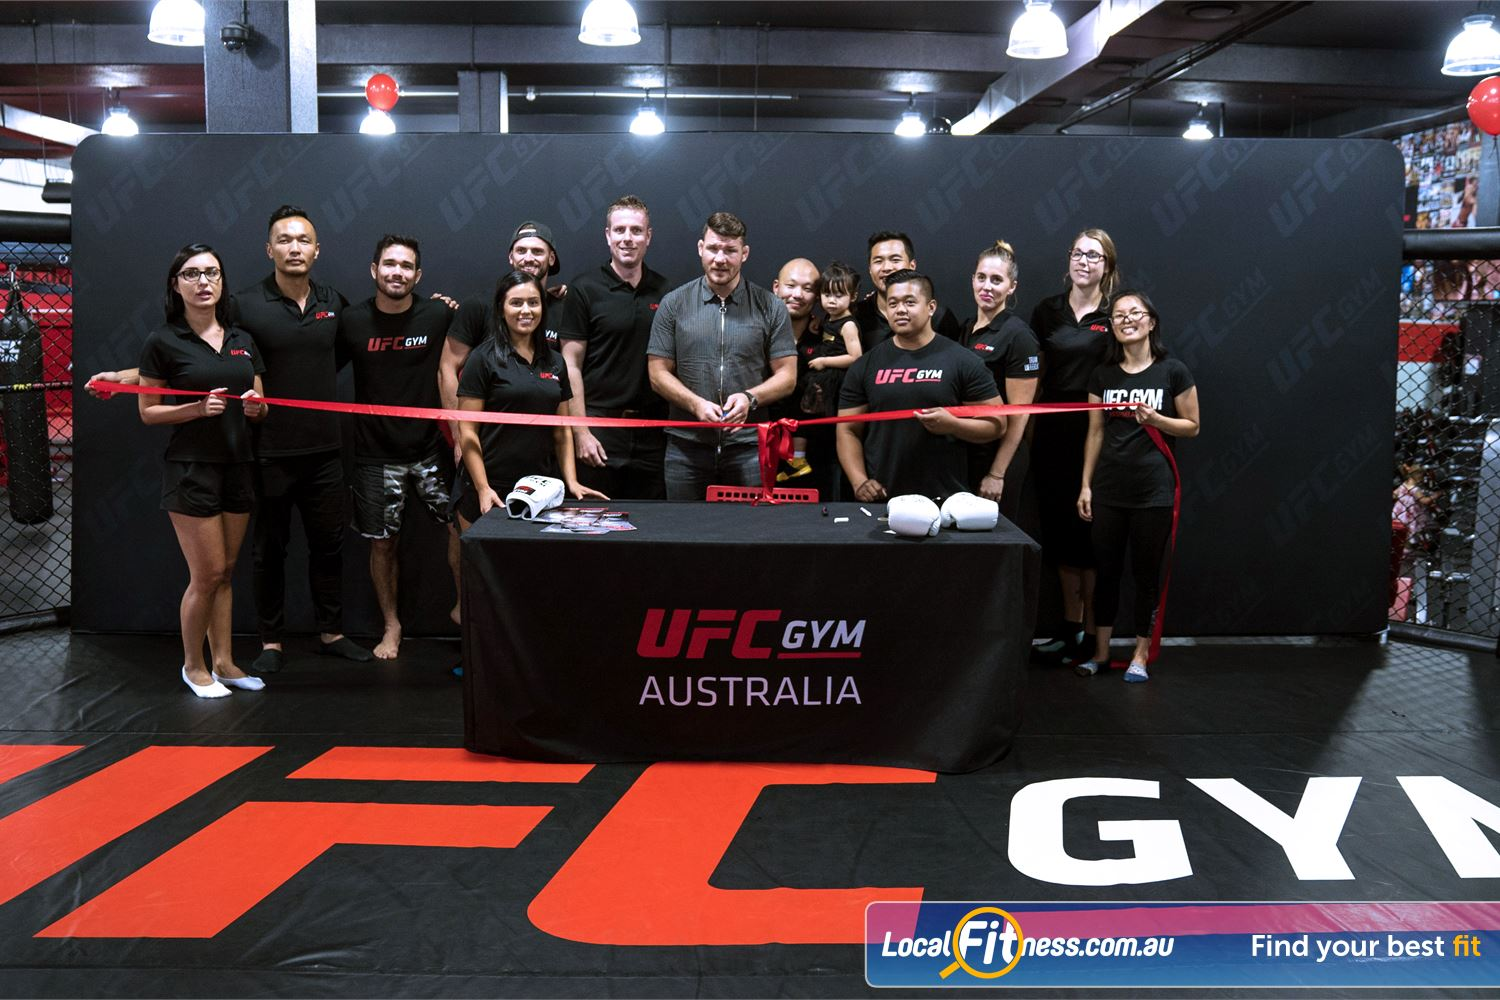 UFC Gym Near Marayong UFC GYM Blacktown has officially opened for the wider community in 2017.